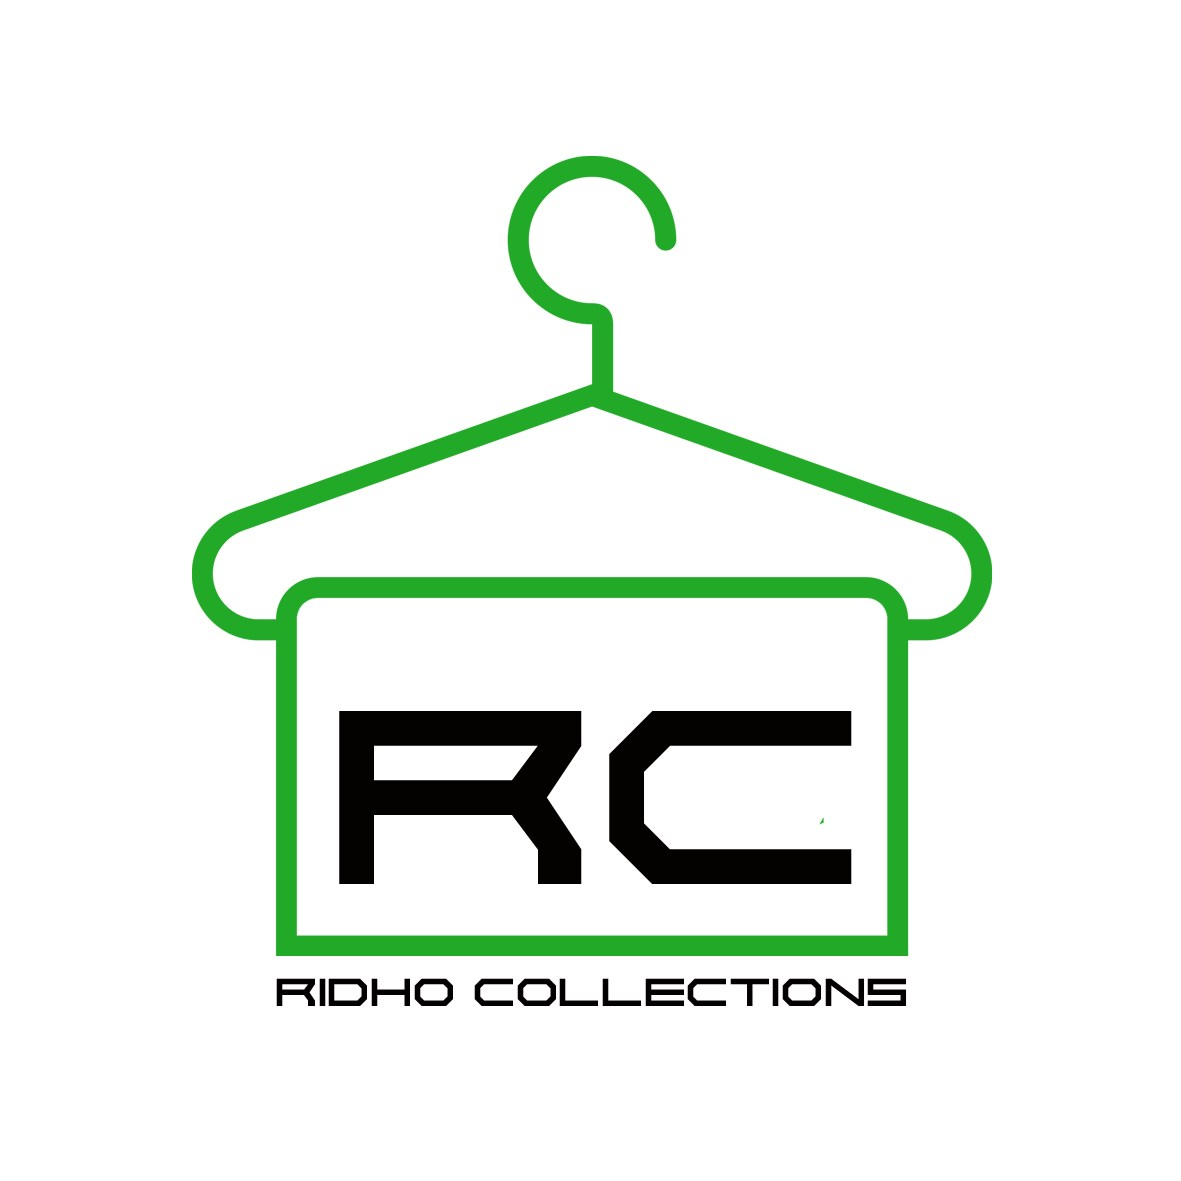 Logo Toko Ridho Collections